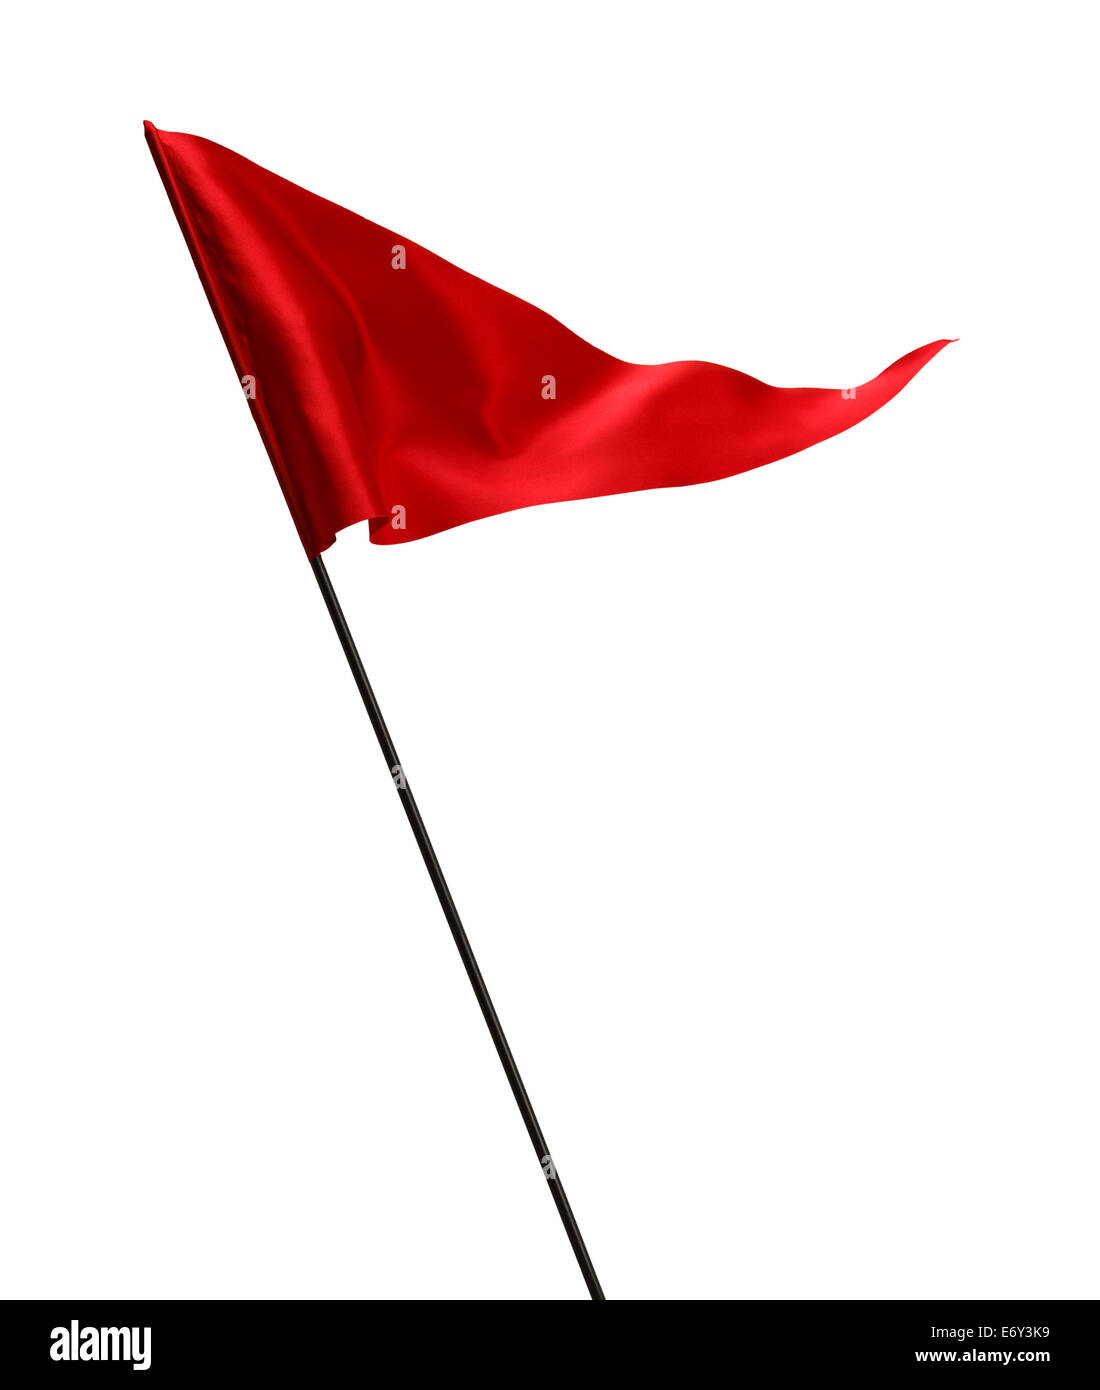 Red Flag Waving in the Wind on Pole Isolated on White Background. - Stock Image